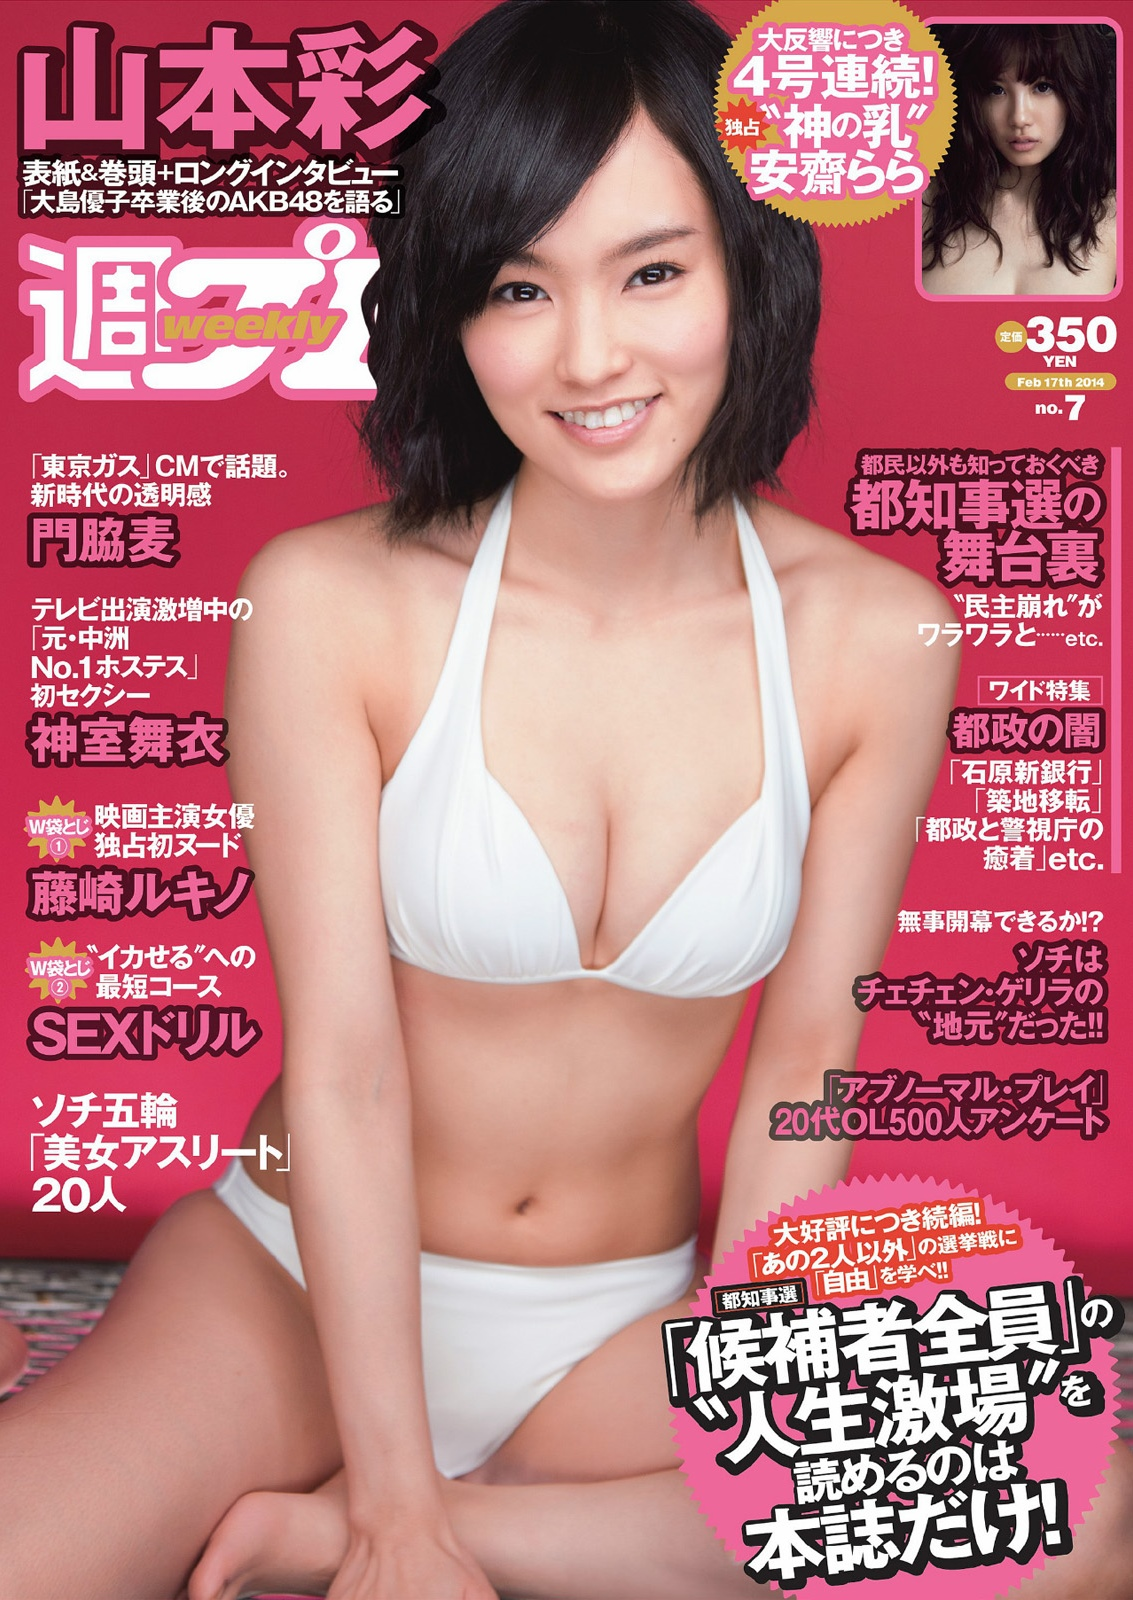 20160303.21 Weekly Playboy (2014.07) 001 (JPOP.ru).jpg